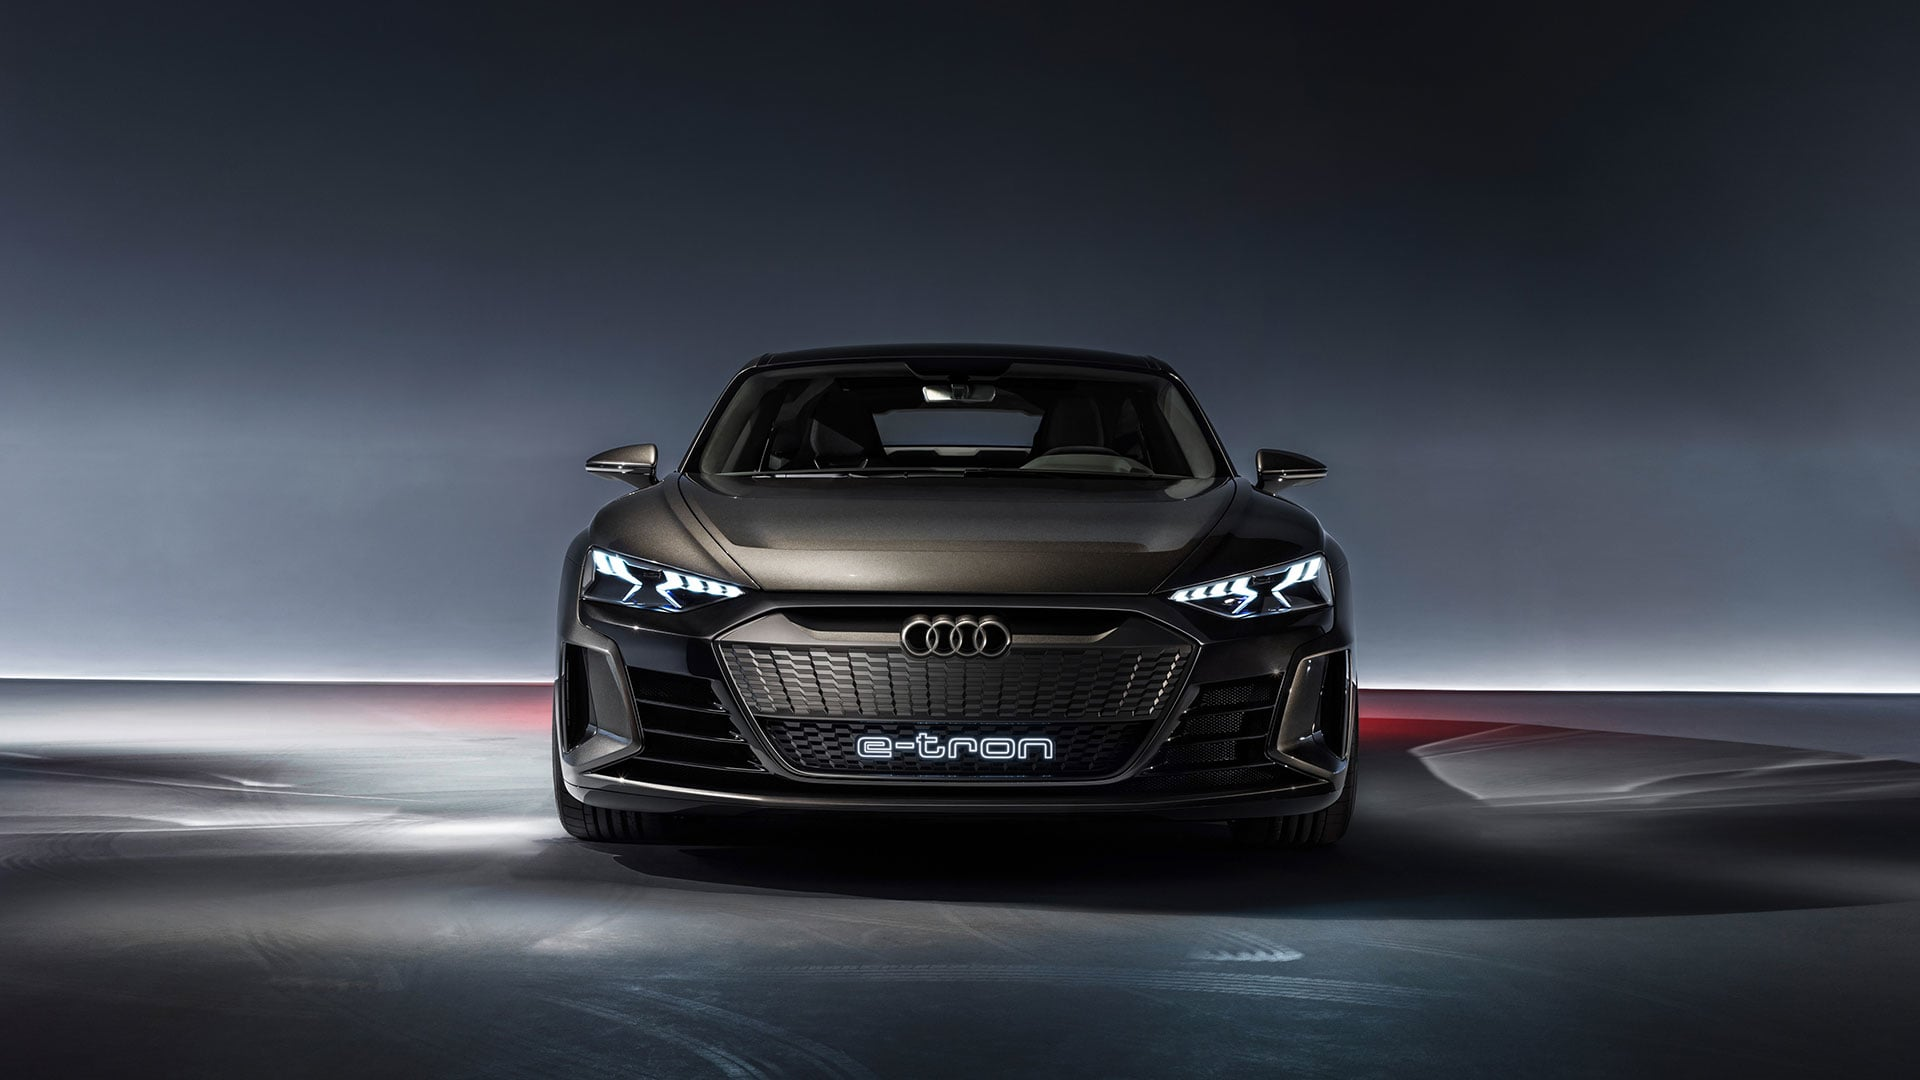 90 All New Audi Vision 2020 Price with Audi Vision 2020